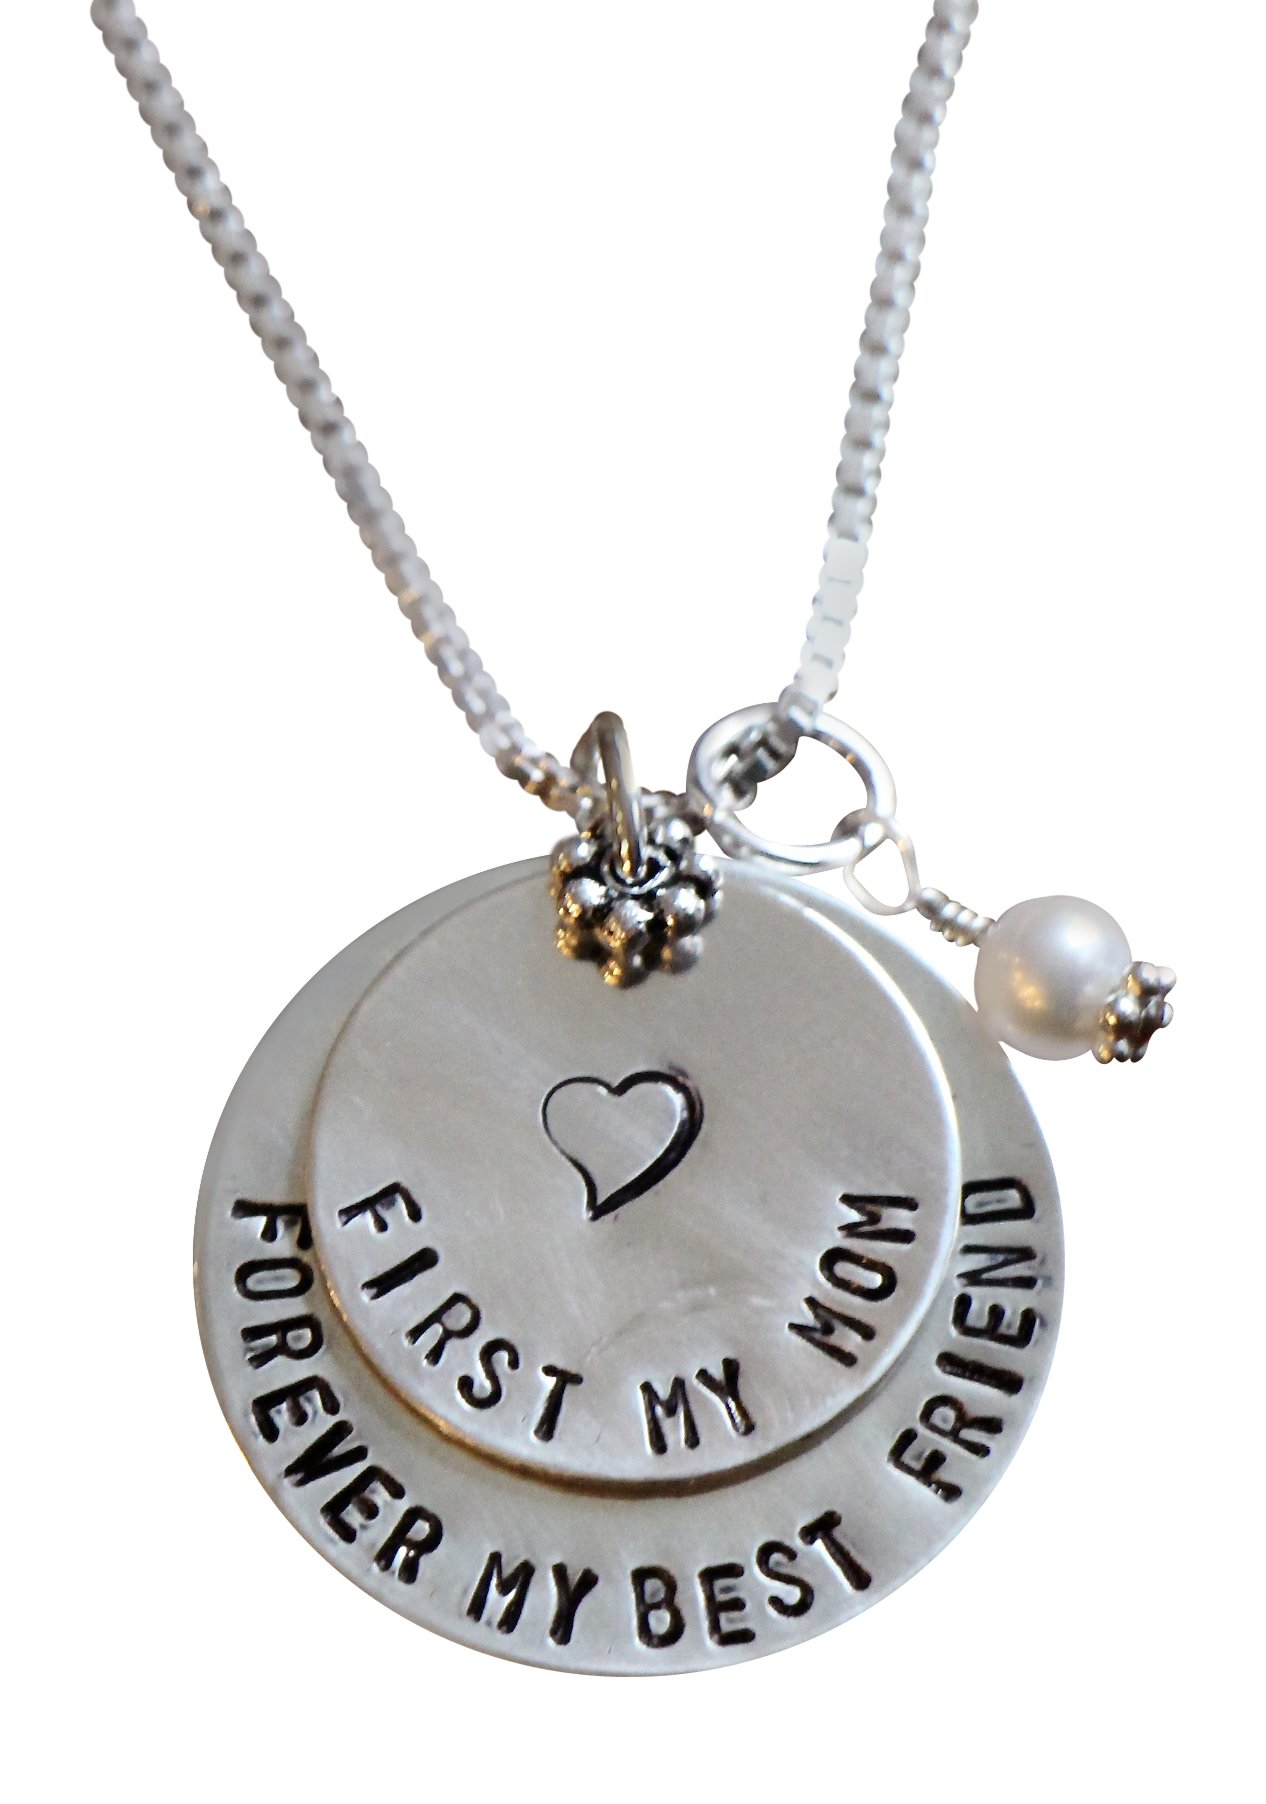 Wedding Personalized Necklace- First My Mother Forever My Best Friend - Christmas or Mother's Day Gift